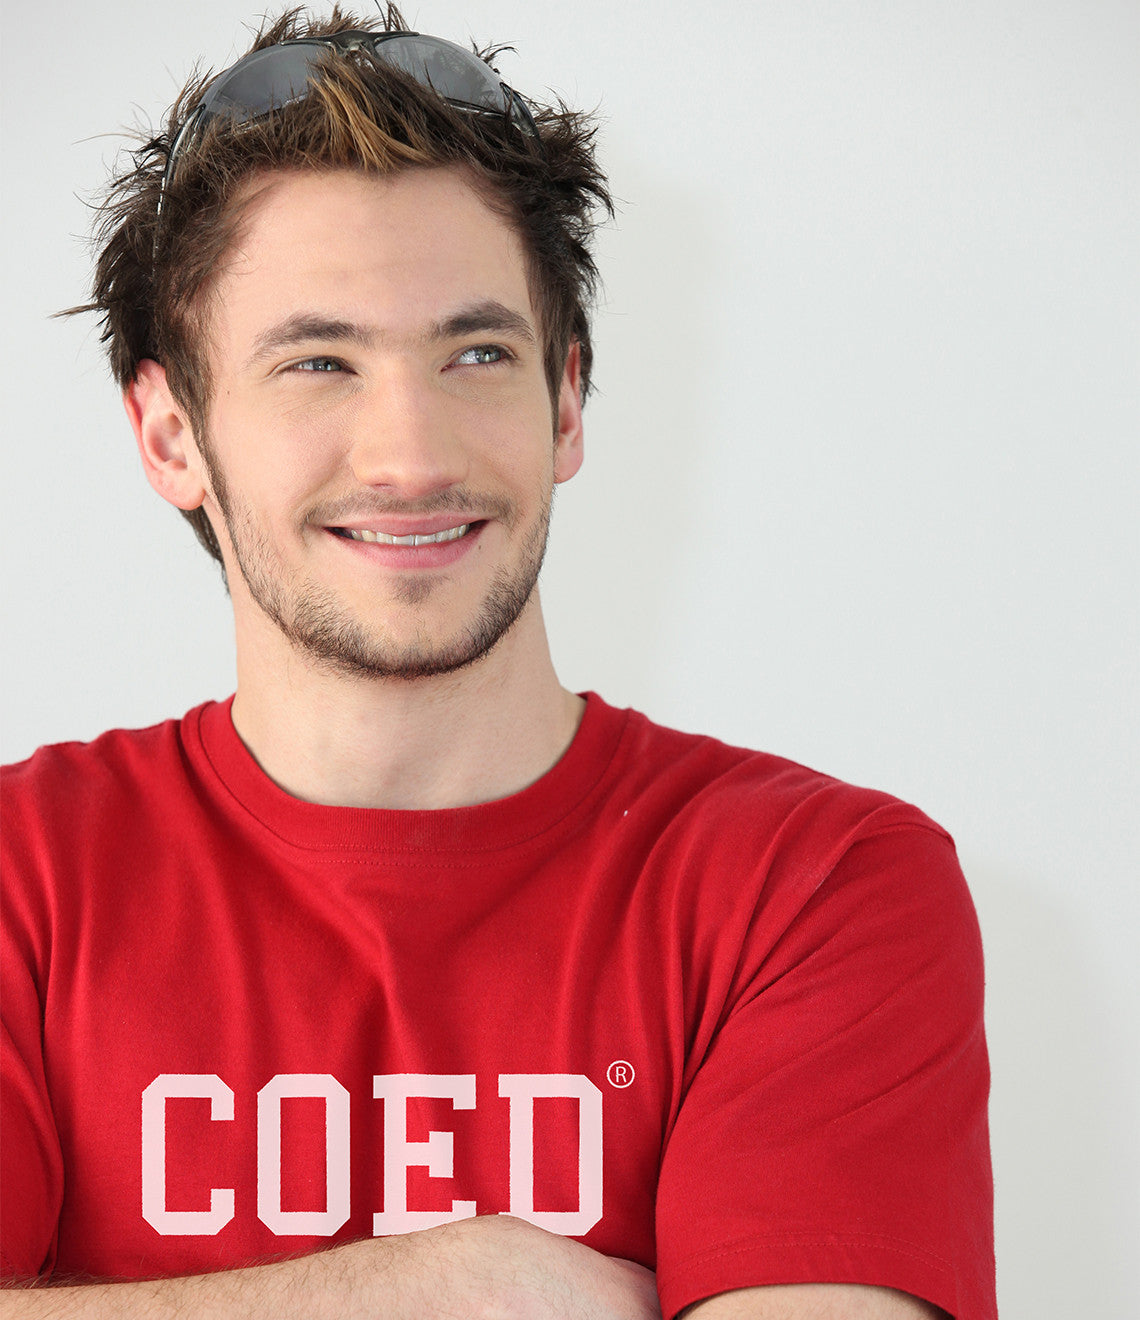 COED Originals T-Shirt (Red) T-Shirt - COED